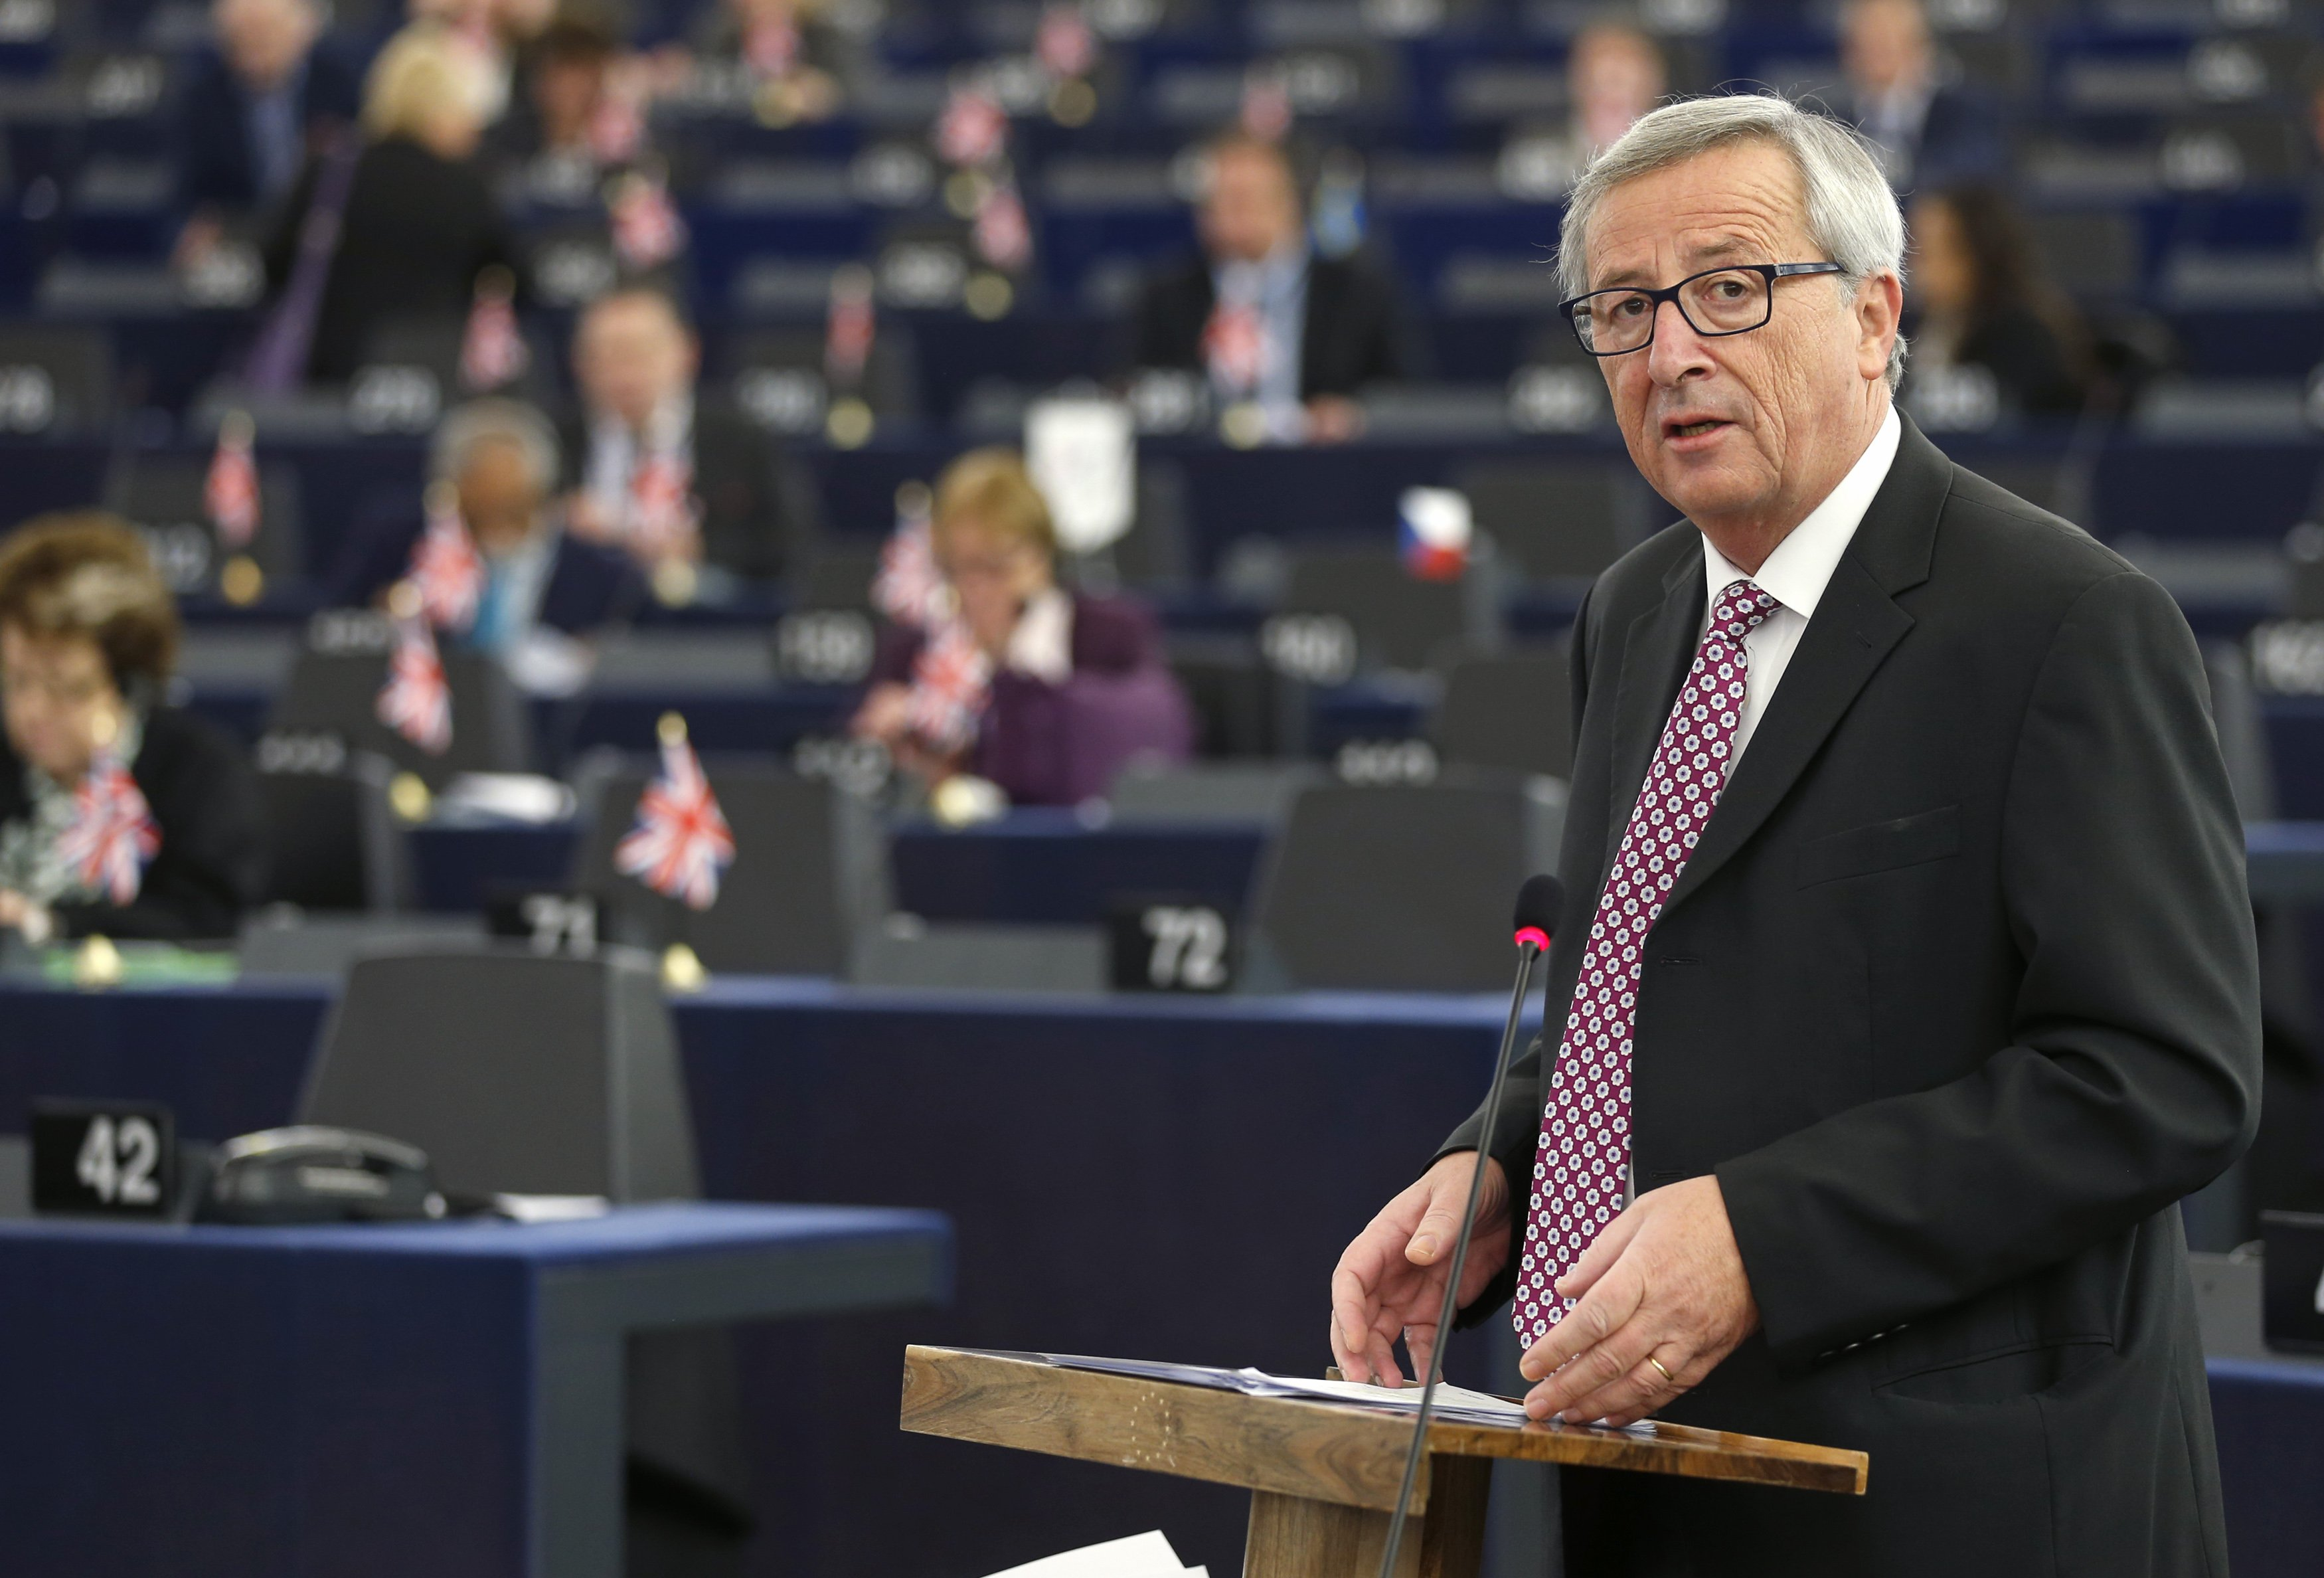 Don't Vote 'Wrong' Way, EU's Juncker Urges Greeks